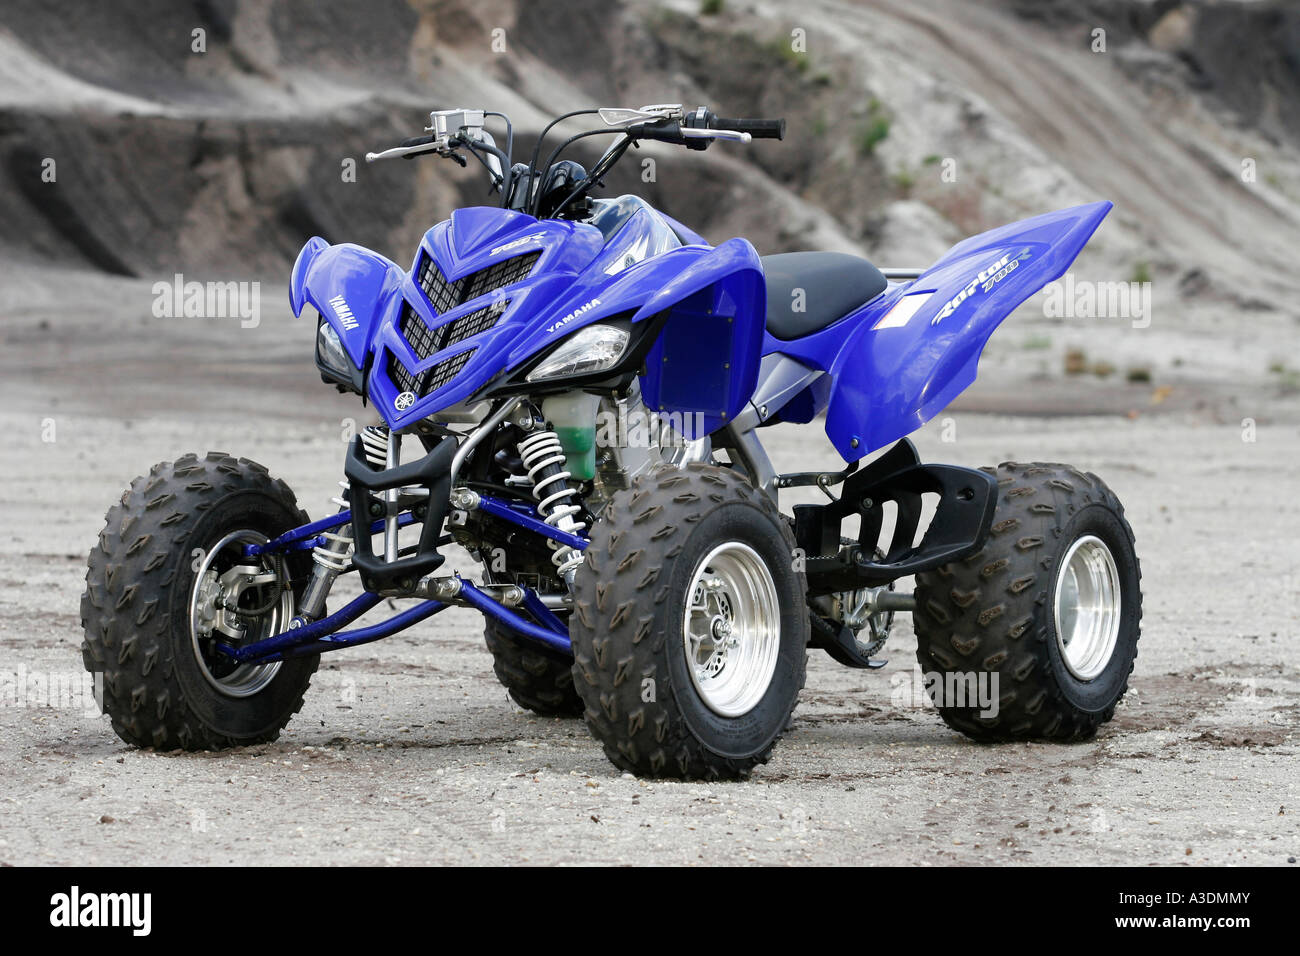 yamaha quad raptor 700 side view stock photo royalty free. Black Bedroom Furniture Sets. Home Design Ideas